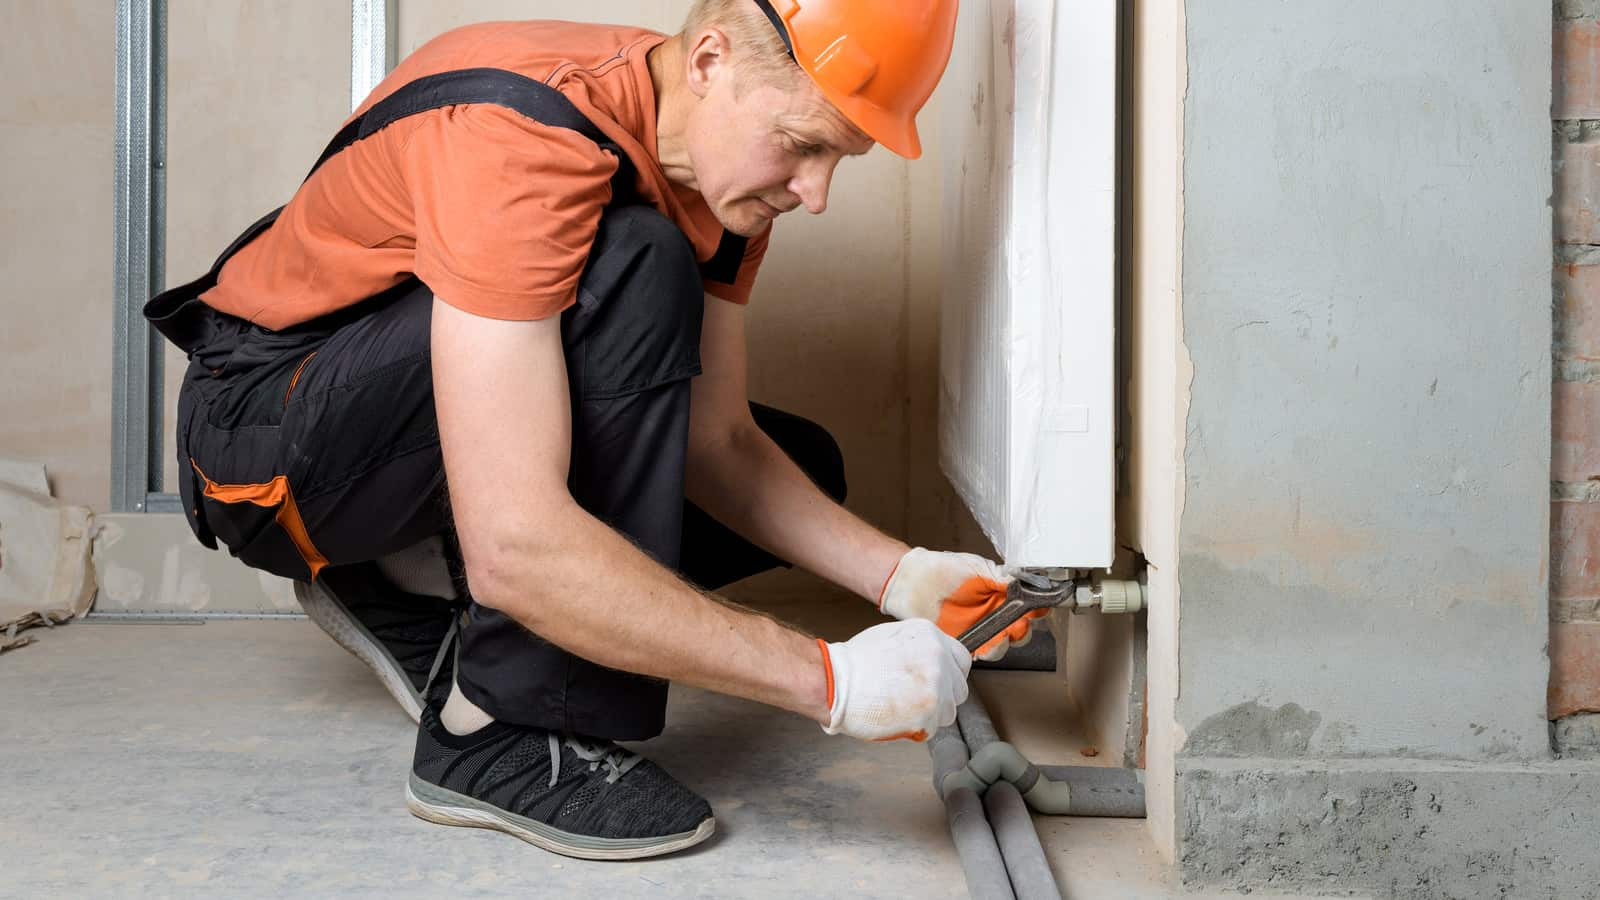 AAA AUGER Plumbing Services of Fort Worth